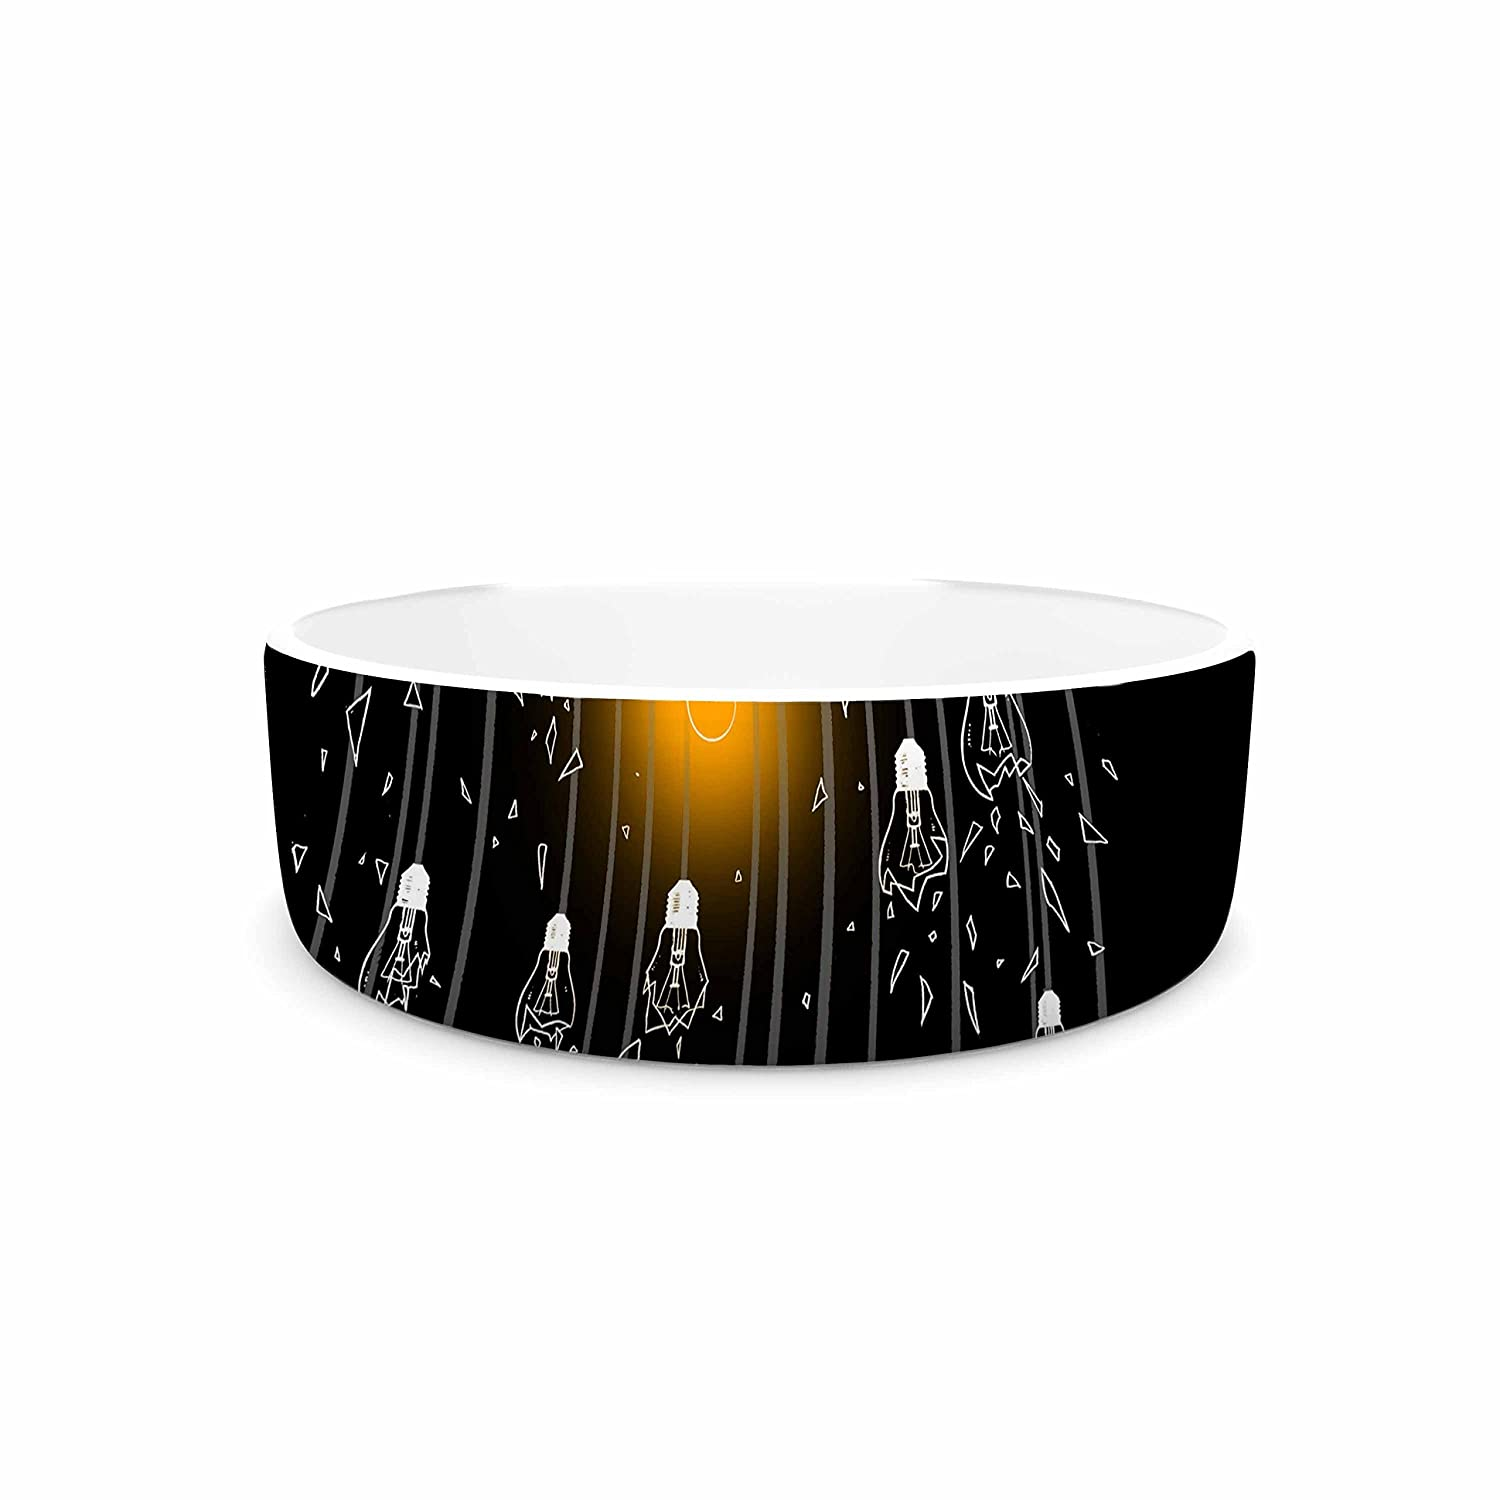 KESS InHouse BarmalisiRTB One Light Black White Digital Pet Bowl, 7  Diameter